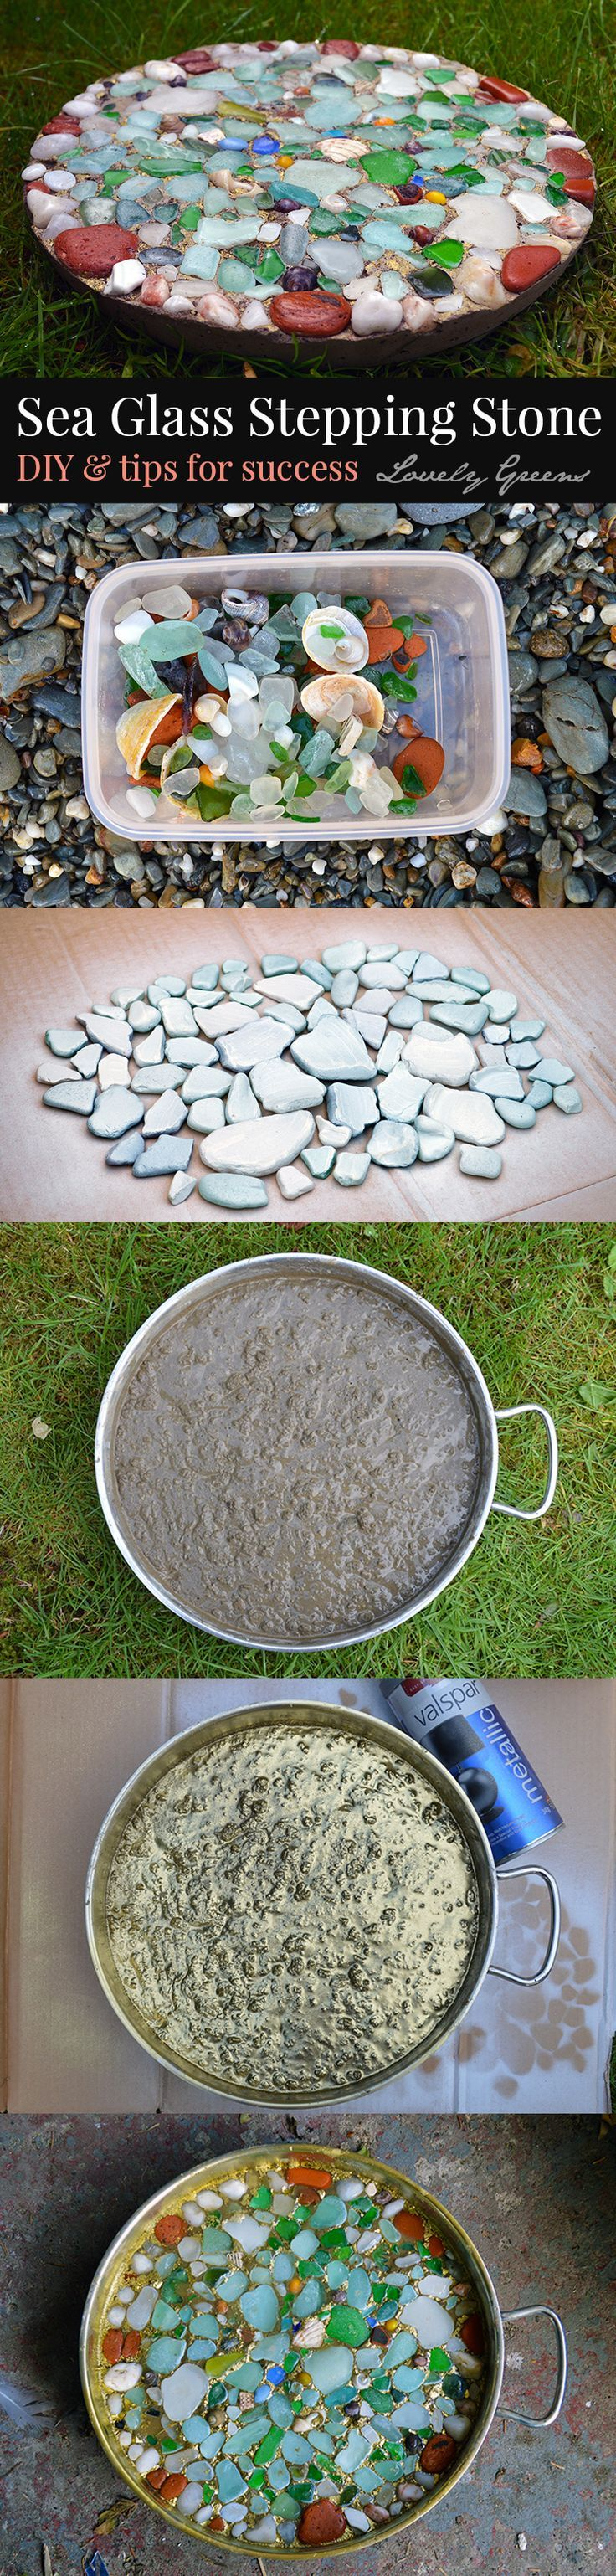 Pseudo A Stepping Stone. Preserve The Memory Of A Beach Visit And The Wet  Look Of Sea Glass In This Diy Project For Garden Stepping Stones.